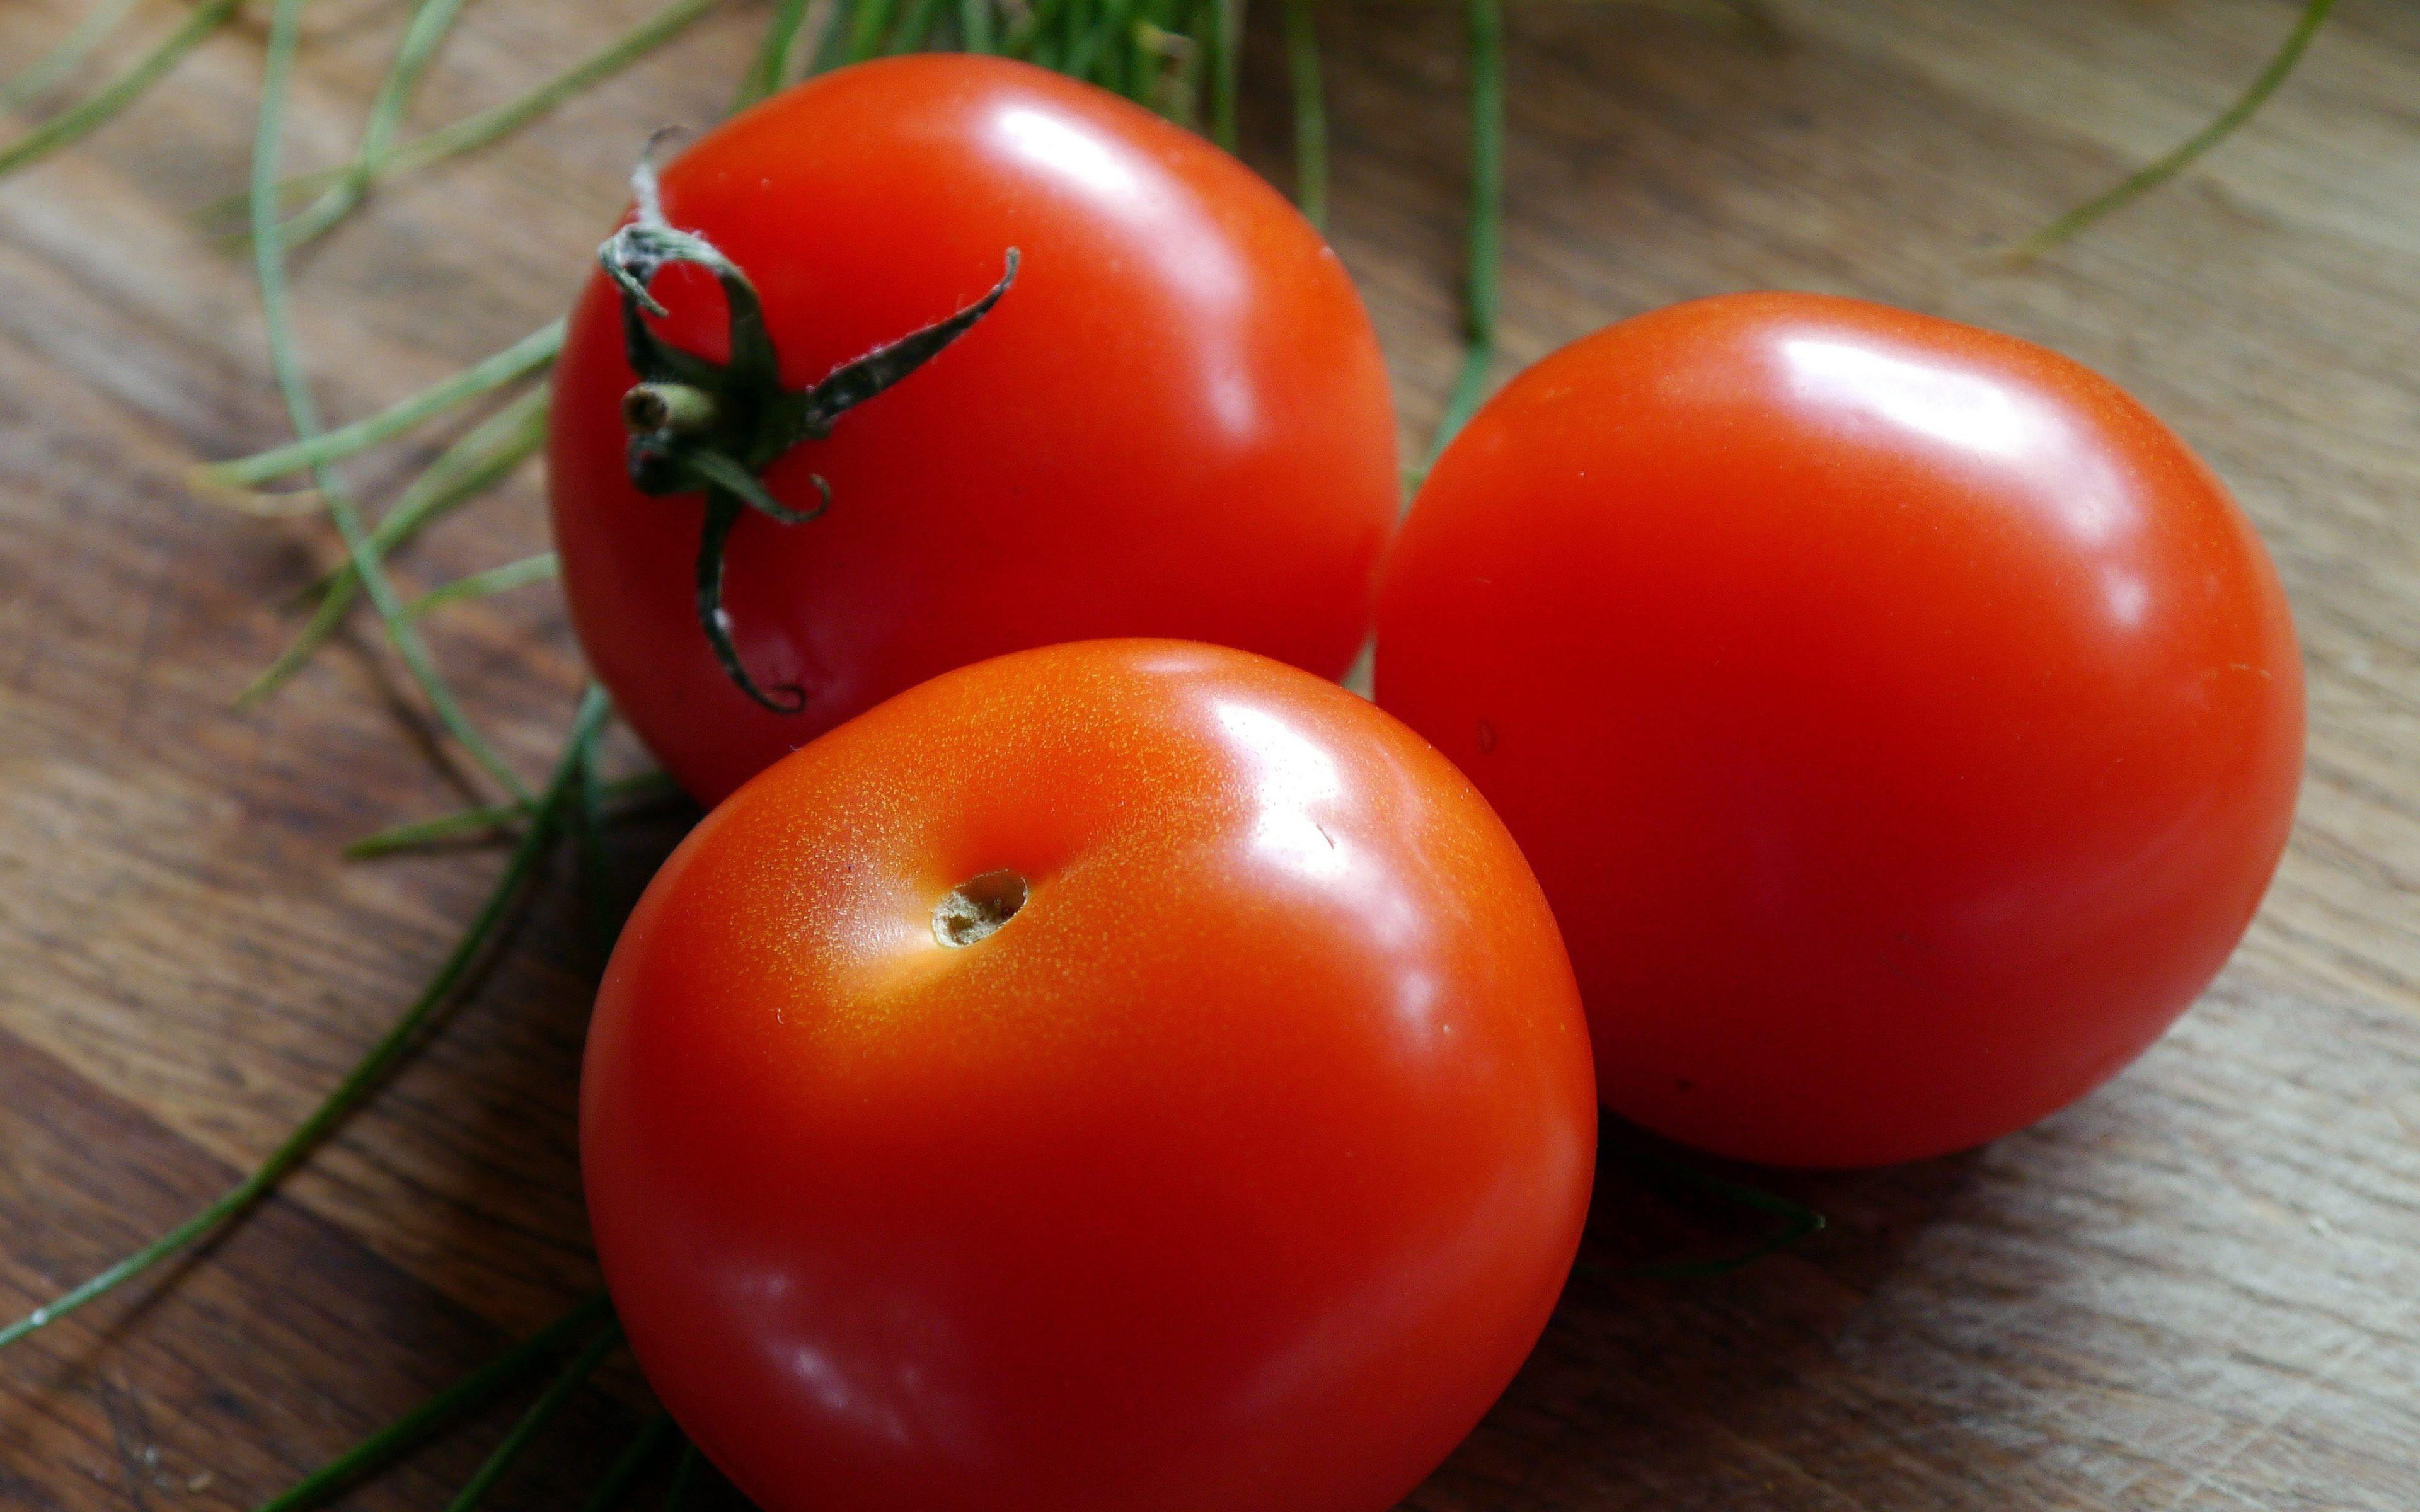 Fresh Tomatoes Wallpapers, Image, Wallpapers of Fresh Tomatoes in